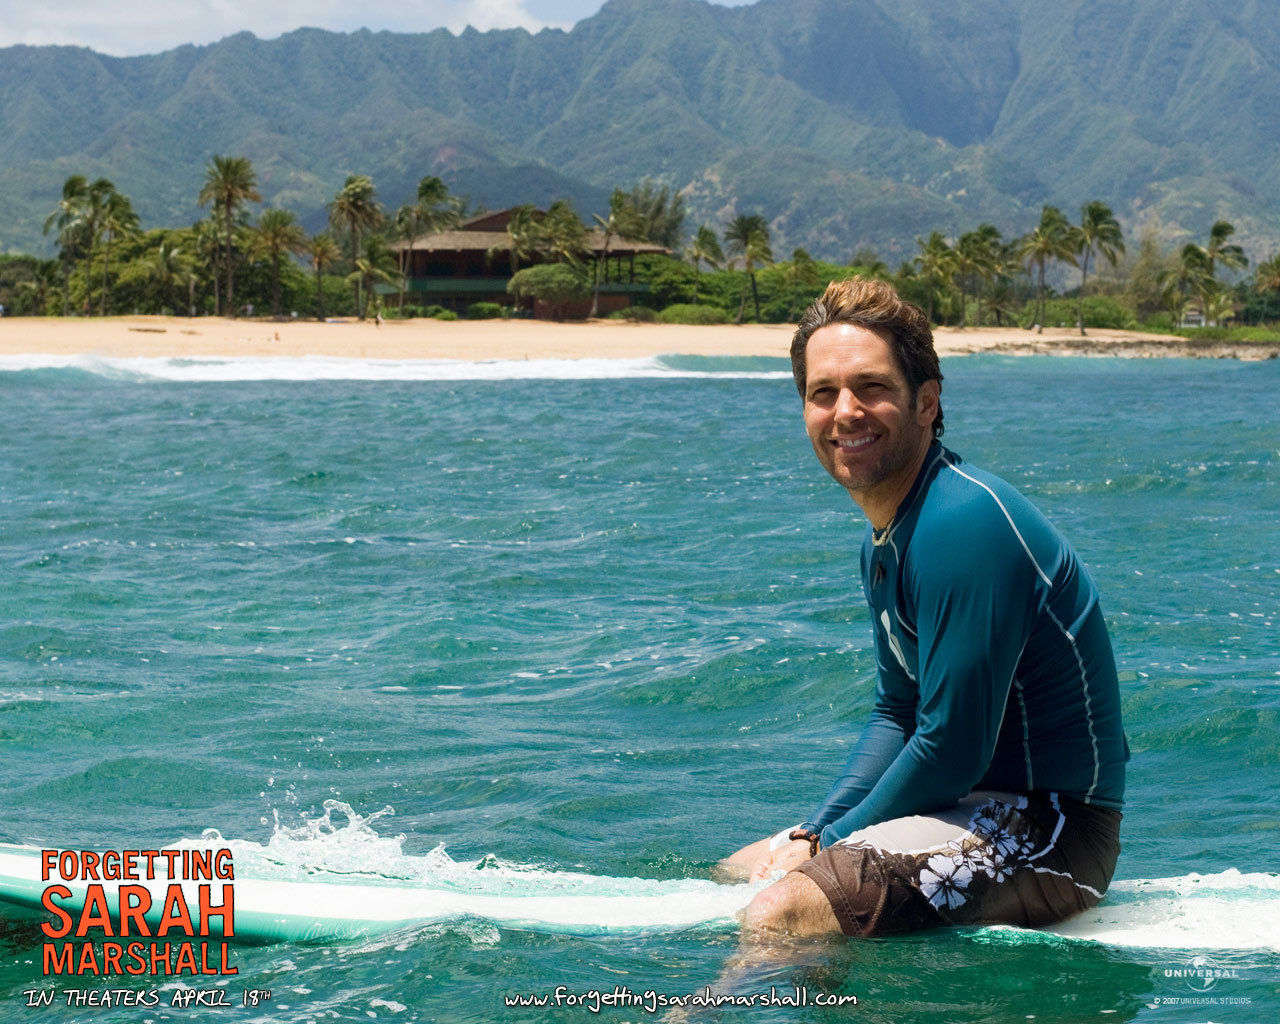 Paul in Forgetting Sarah Marshall